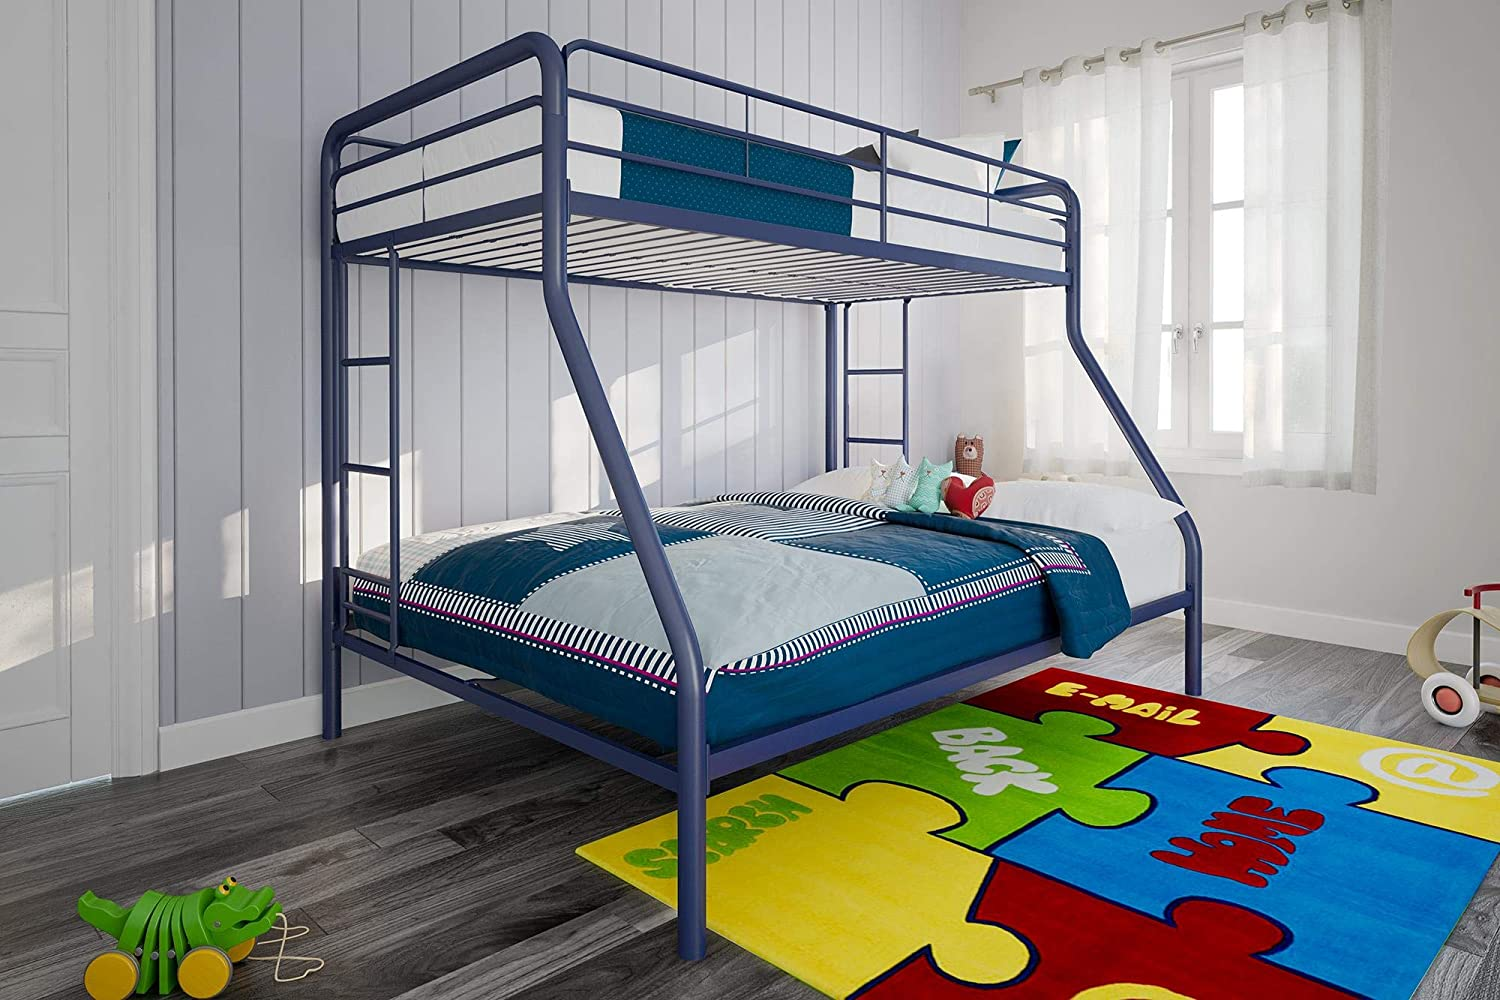 Dhp Twin Over Full Bunk Bed With Metal Frame And Ladder Space Saving Design Blue Furniture Decor